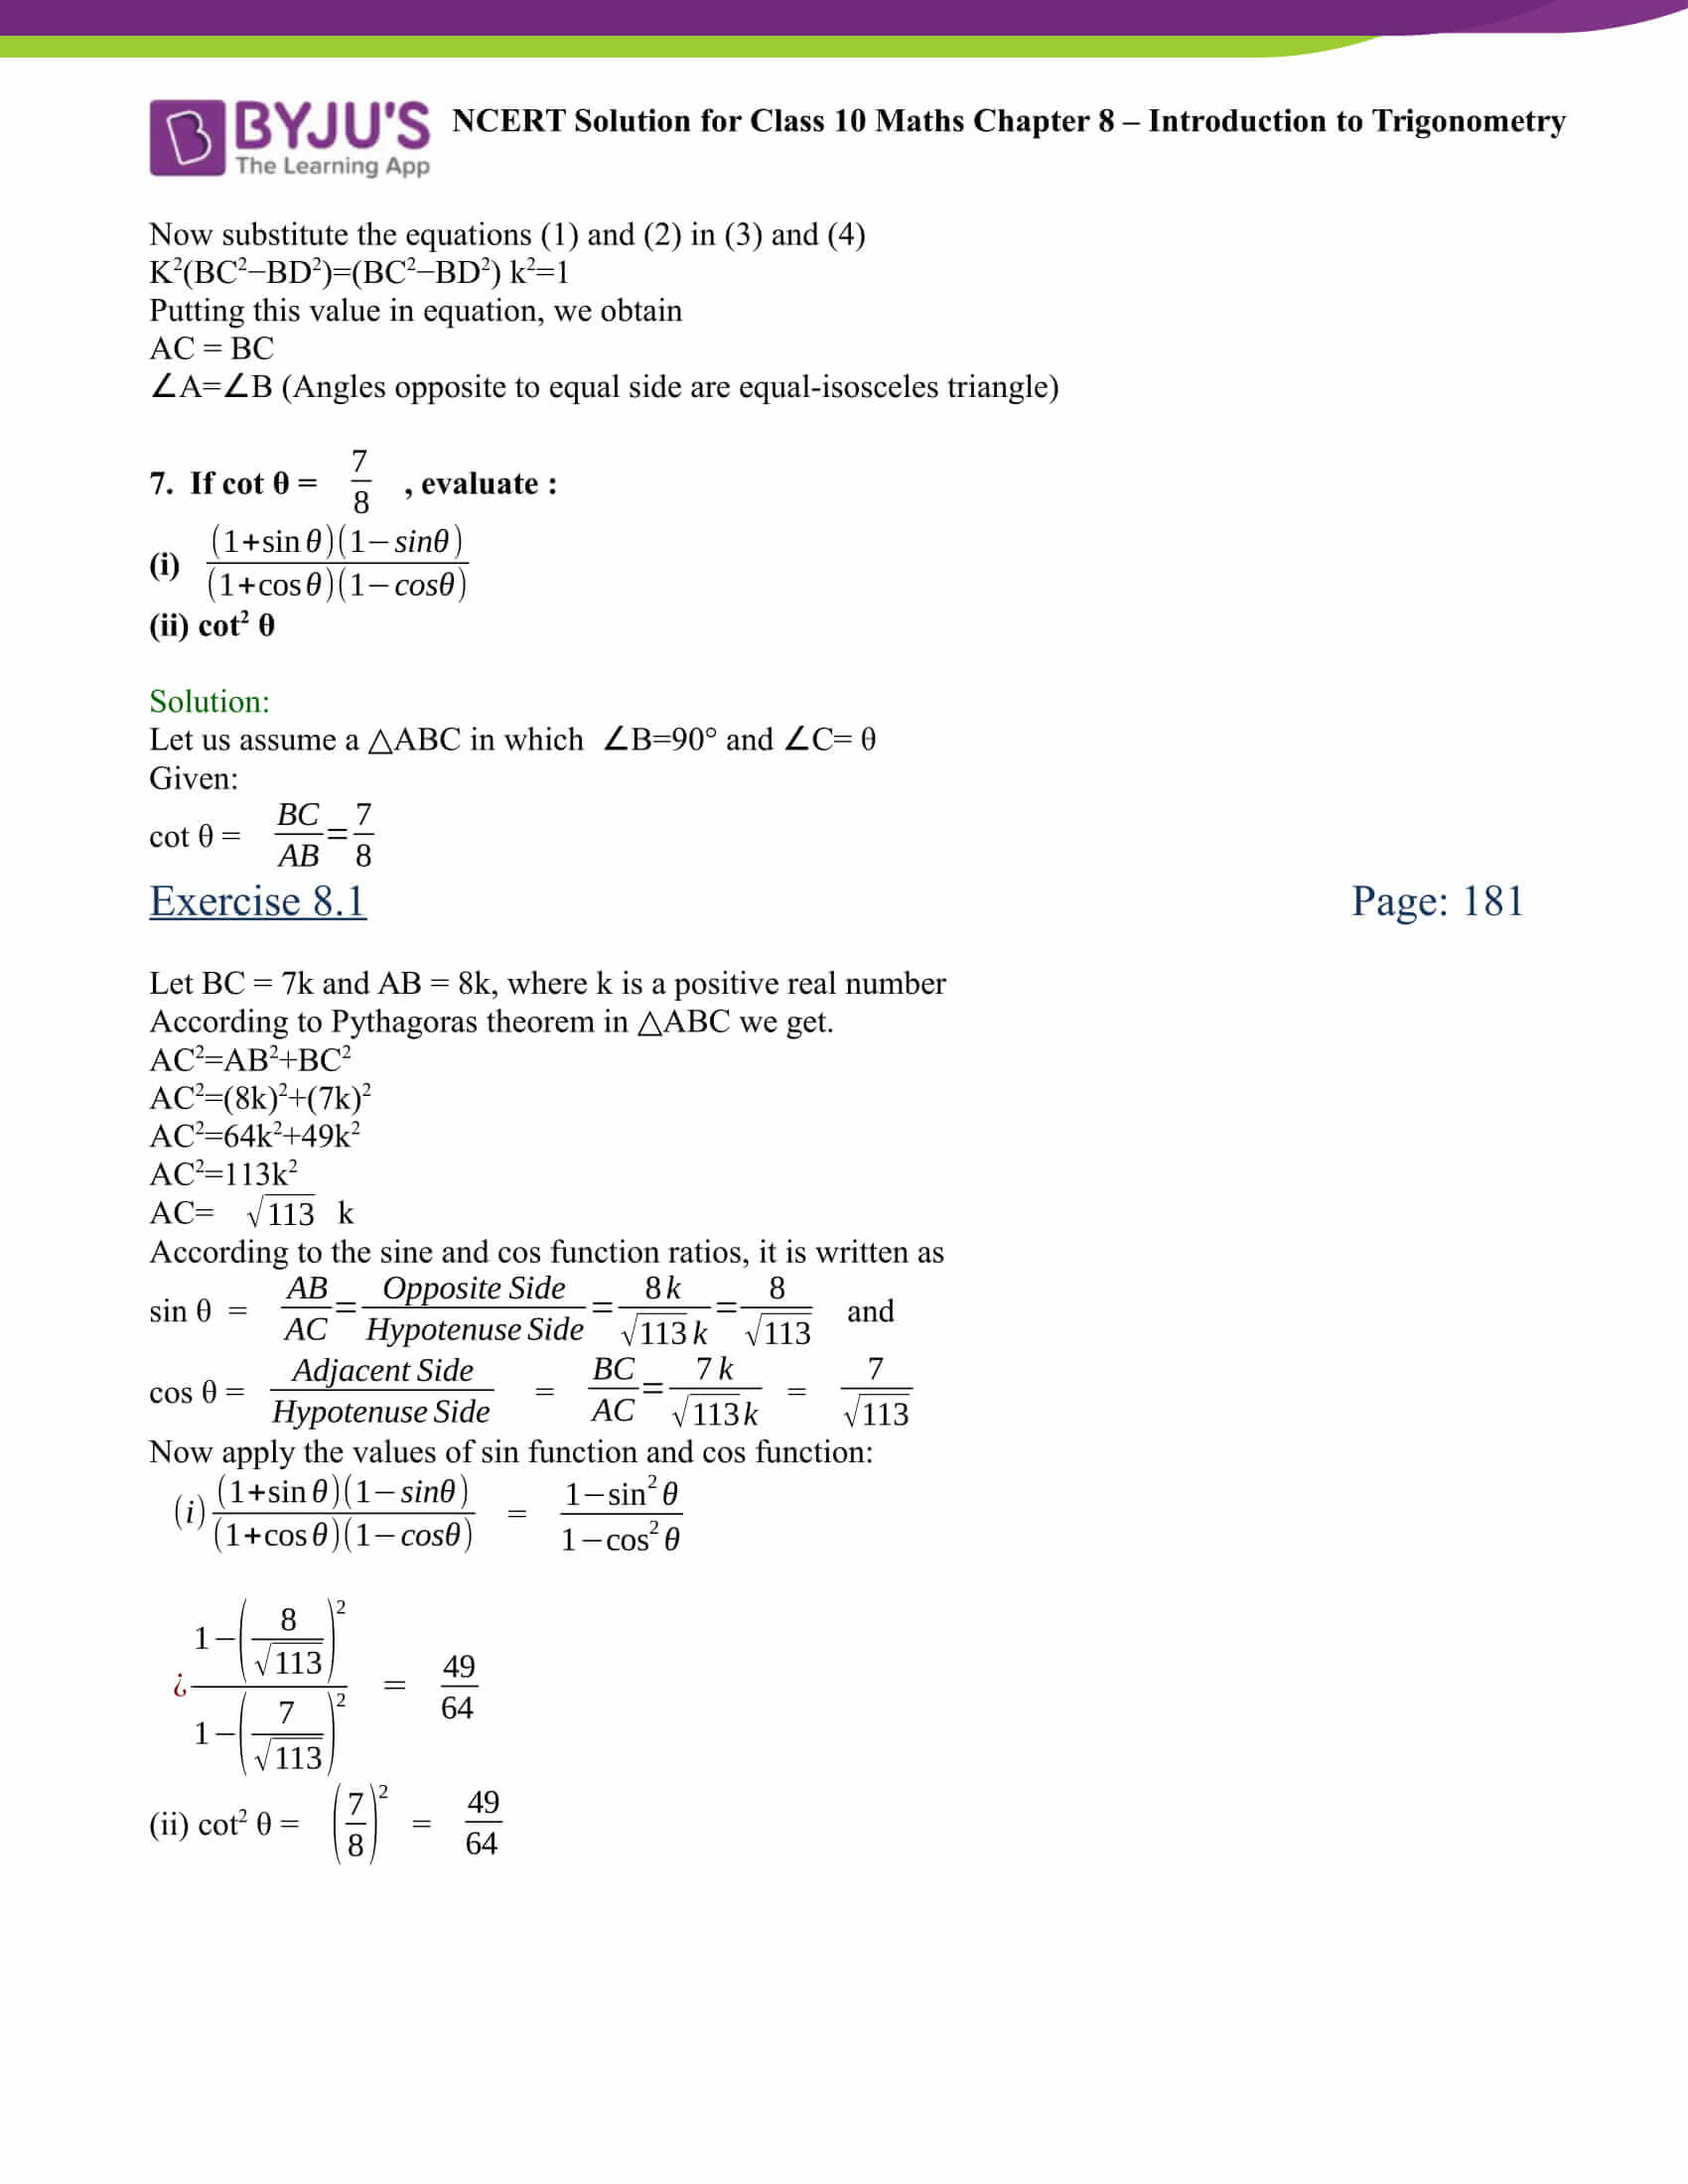 NCERT Solution for class 10 Maths chapter 8 Introduction to Trigonometry Part 6